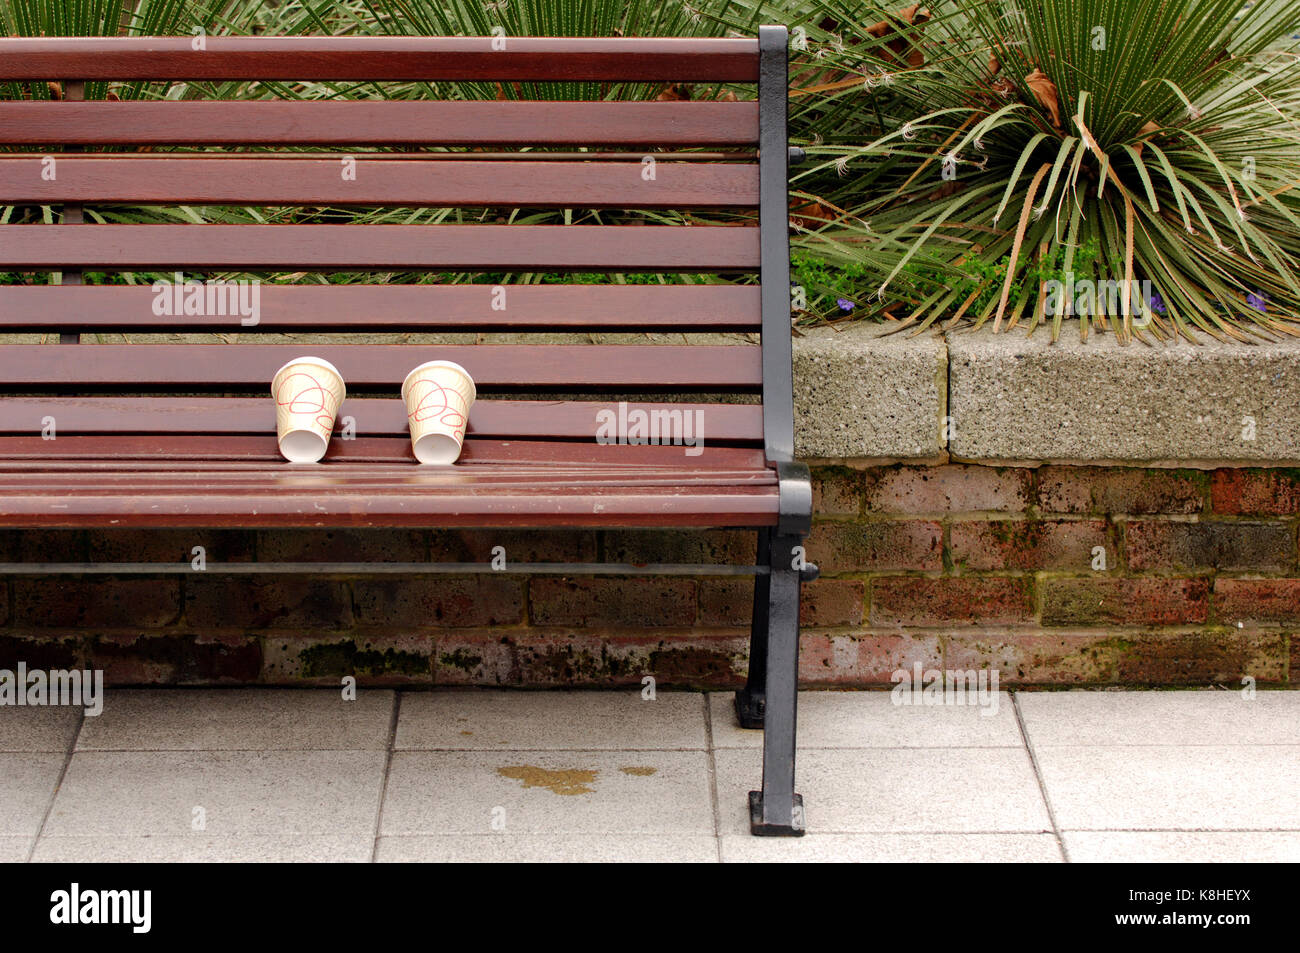 tow empty paper coffee cups left on a wooden bench by litter bugs. Lazy people not throwing litter and rubbish away - Stock Image